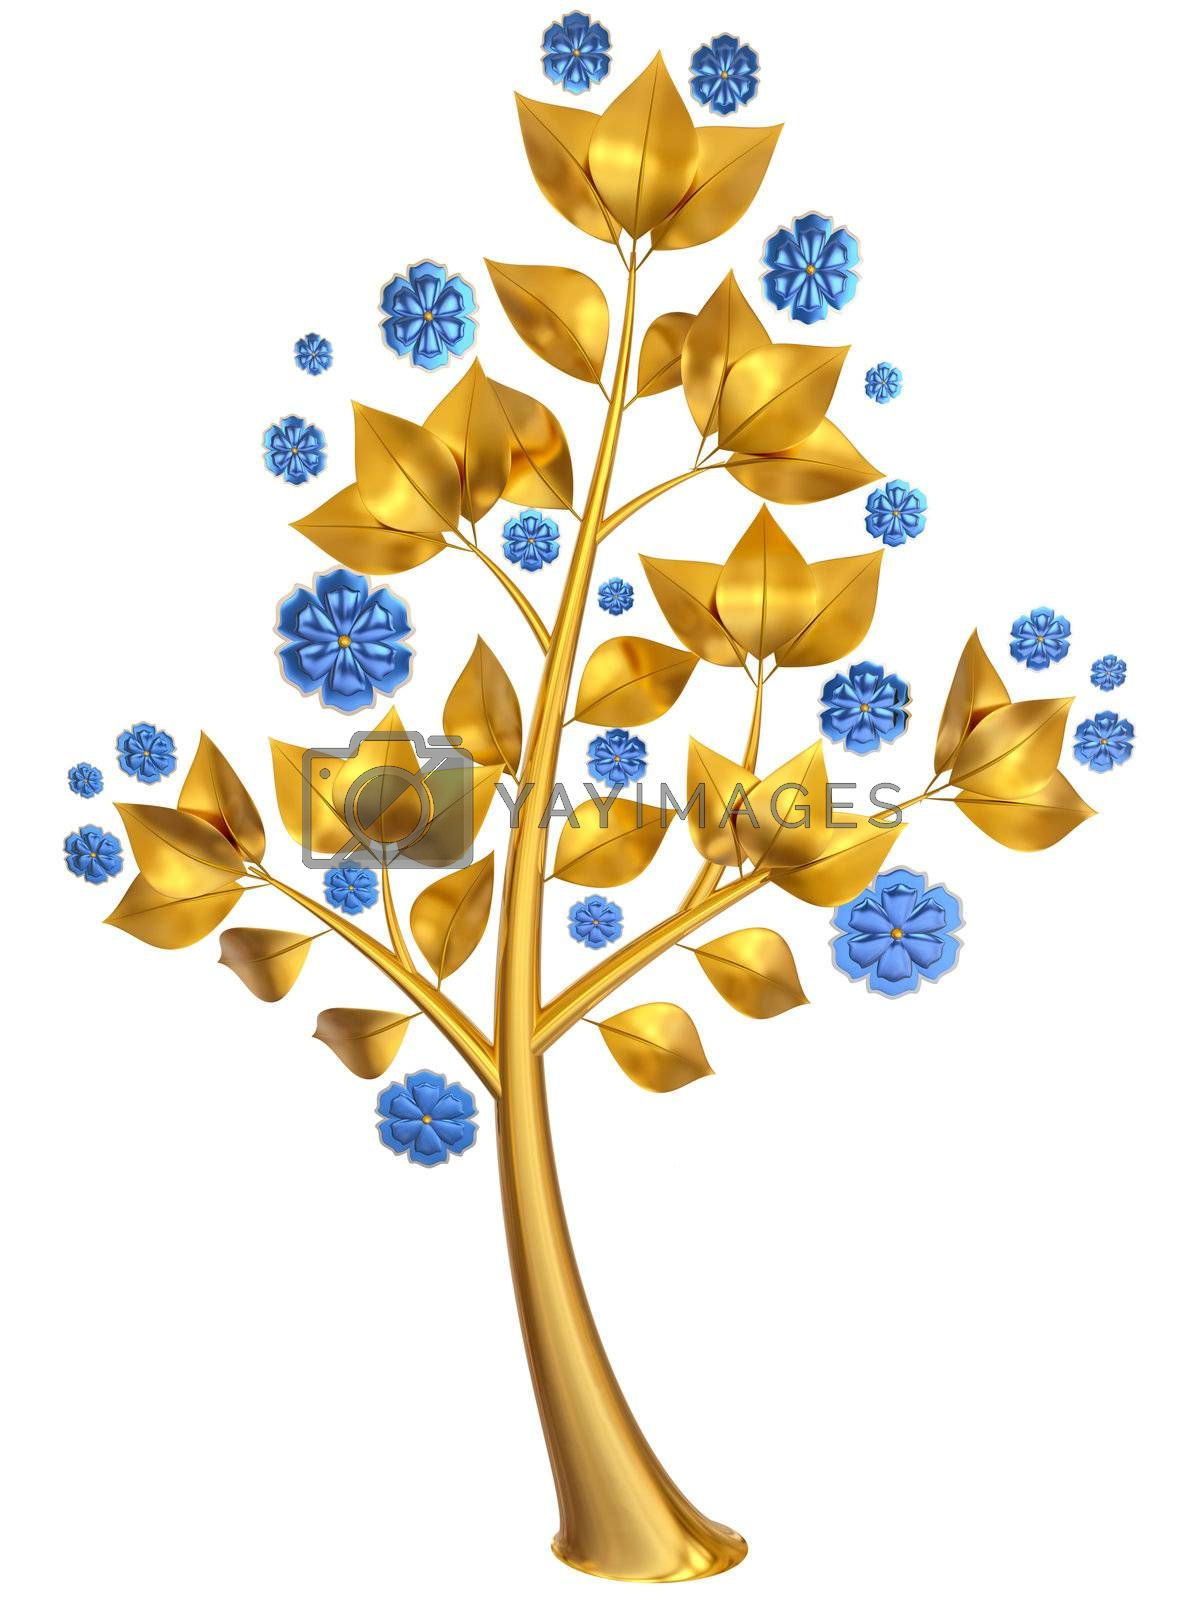 Beautiful golden tree with expensive blue flowers as jewelry